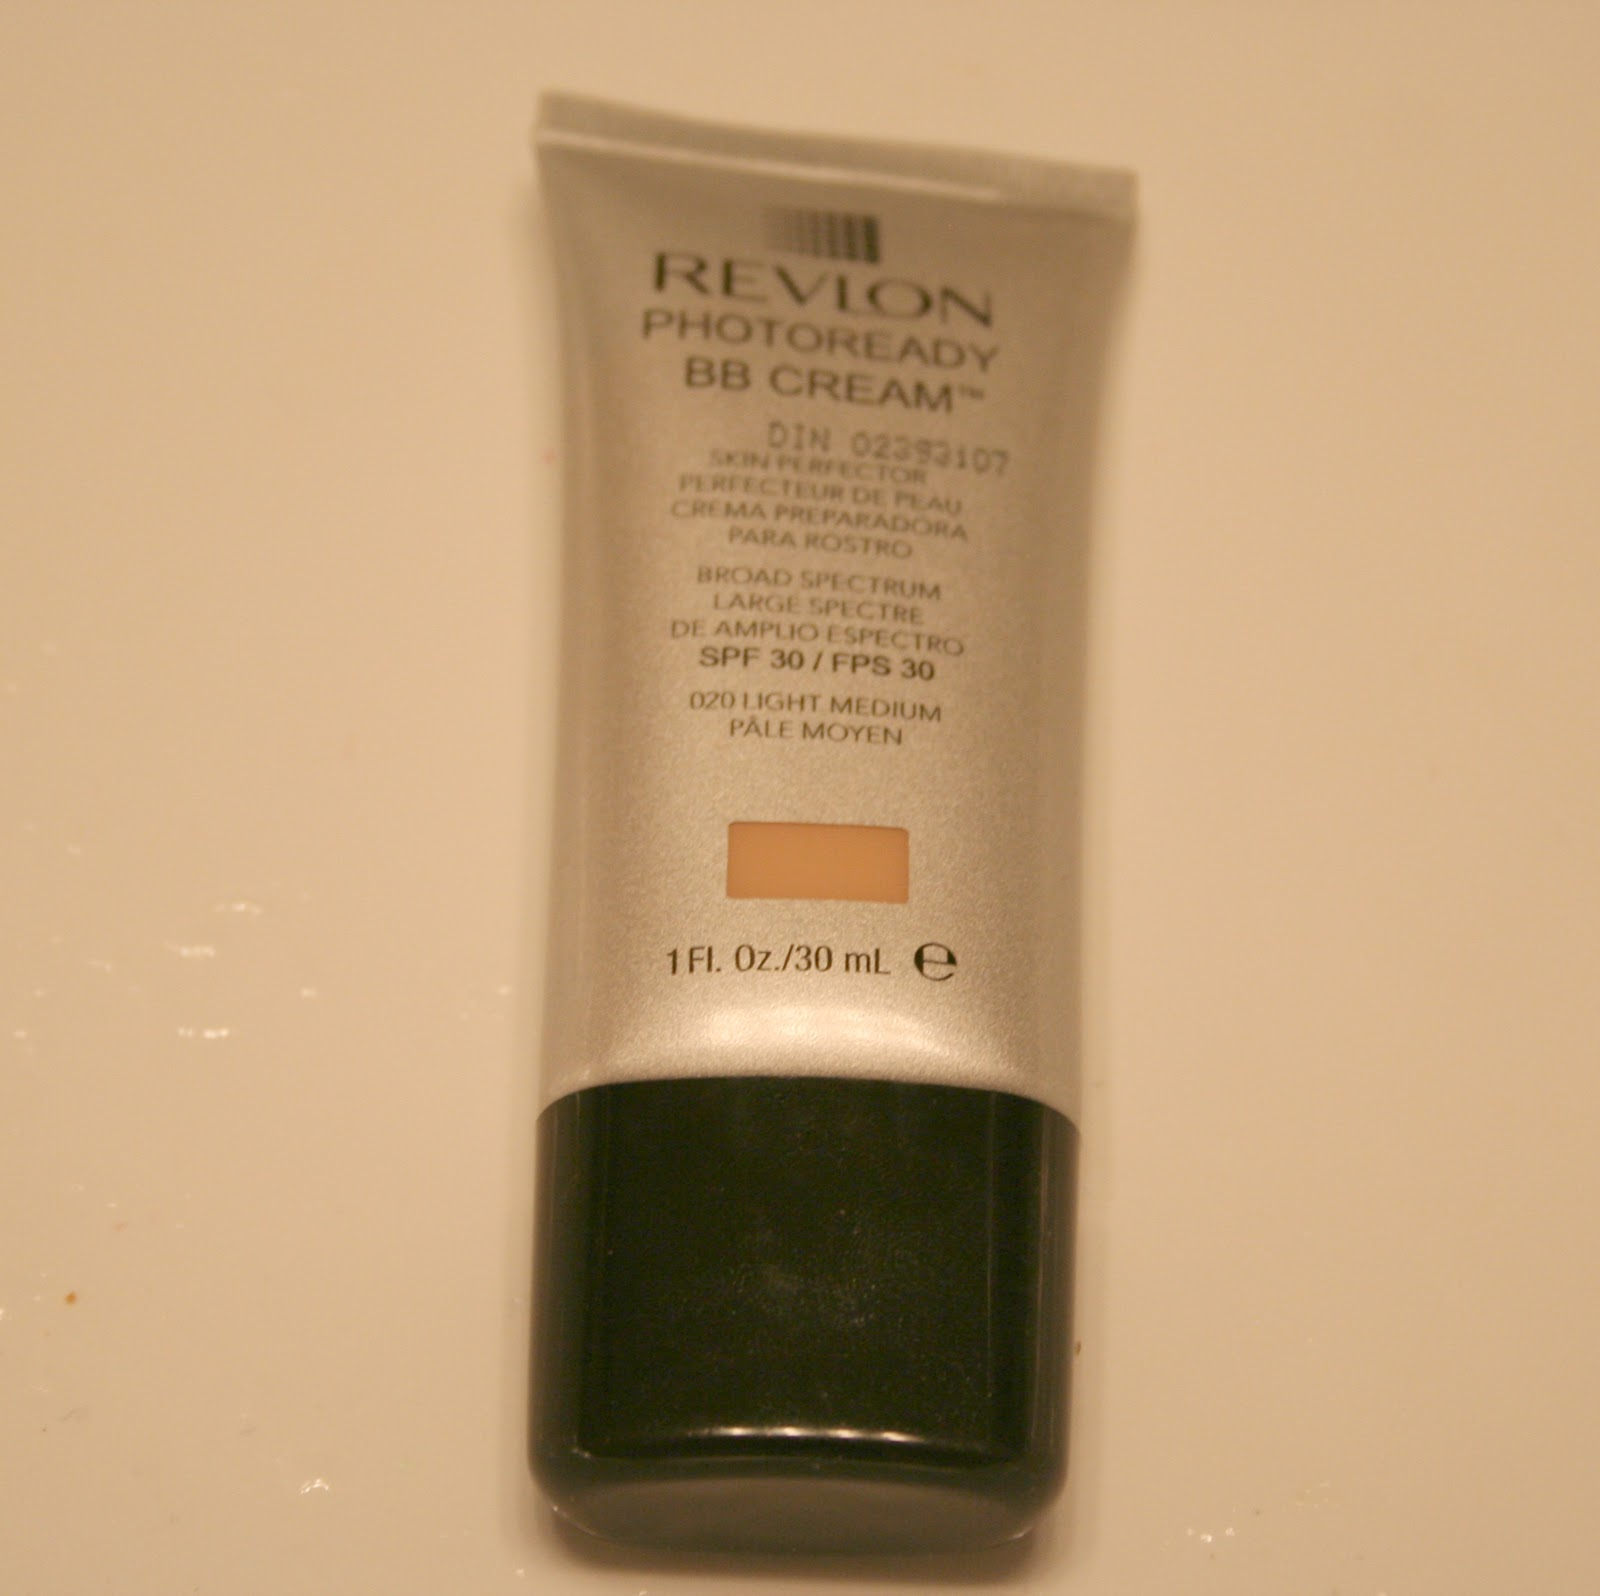 bb cream recommended